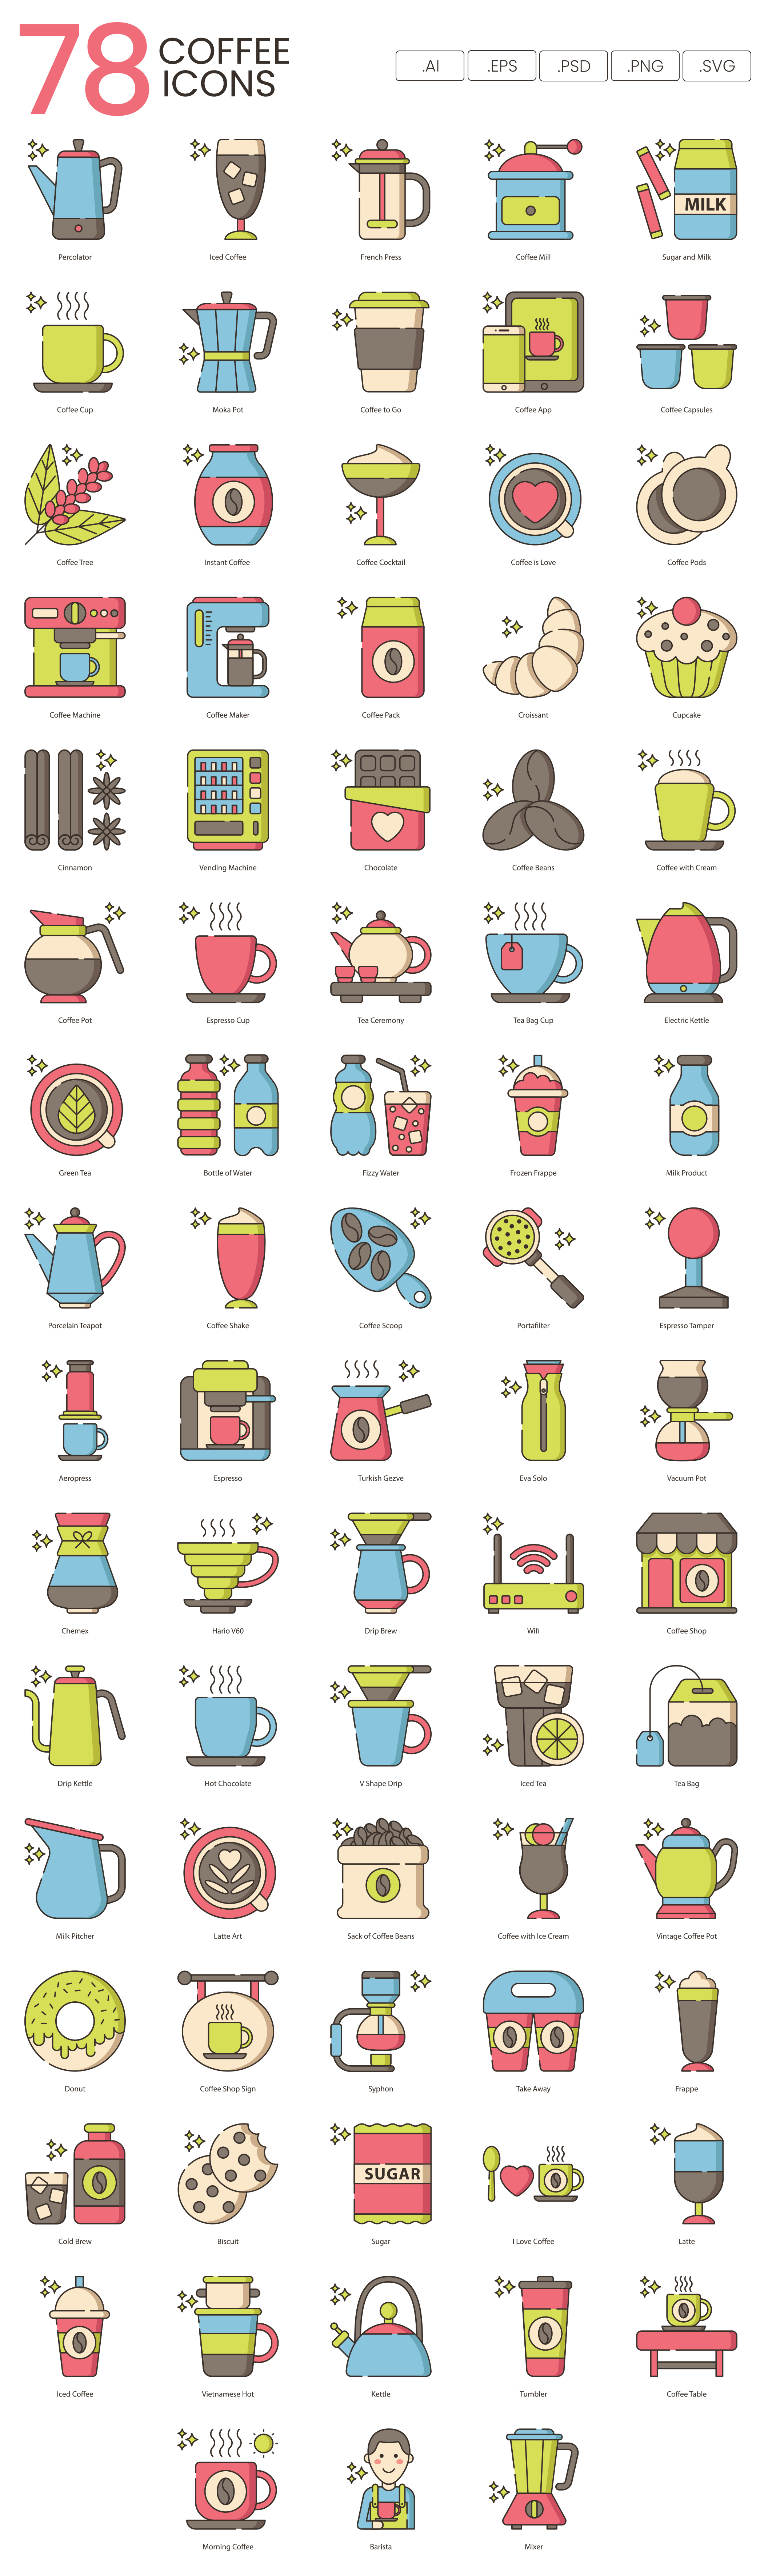 Coffee Vector Icons Preview Image